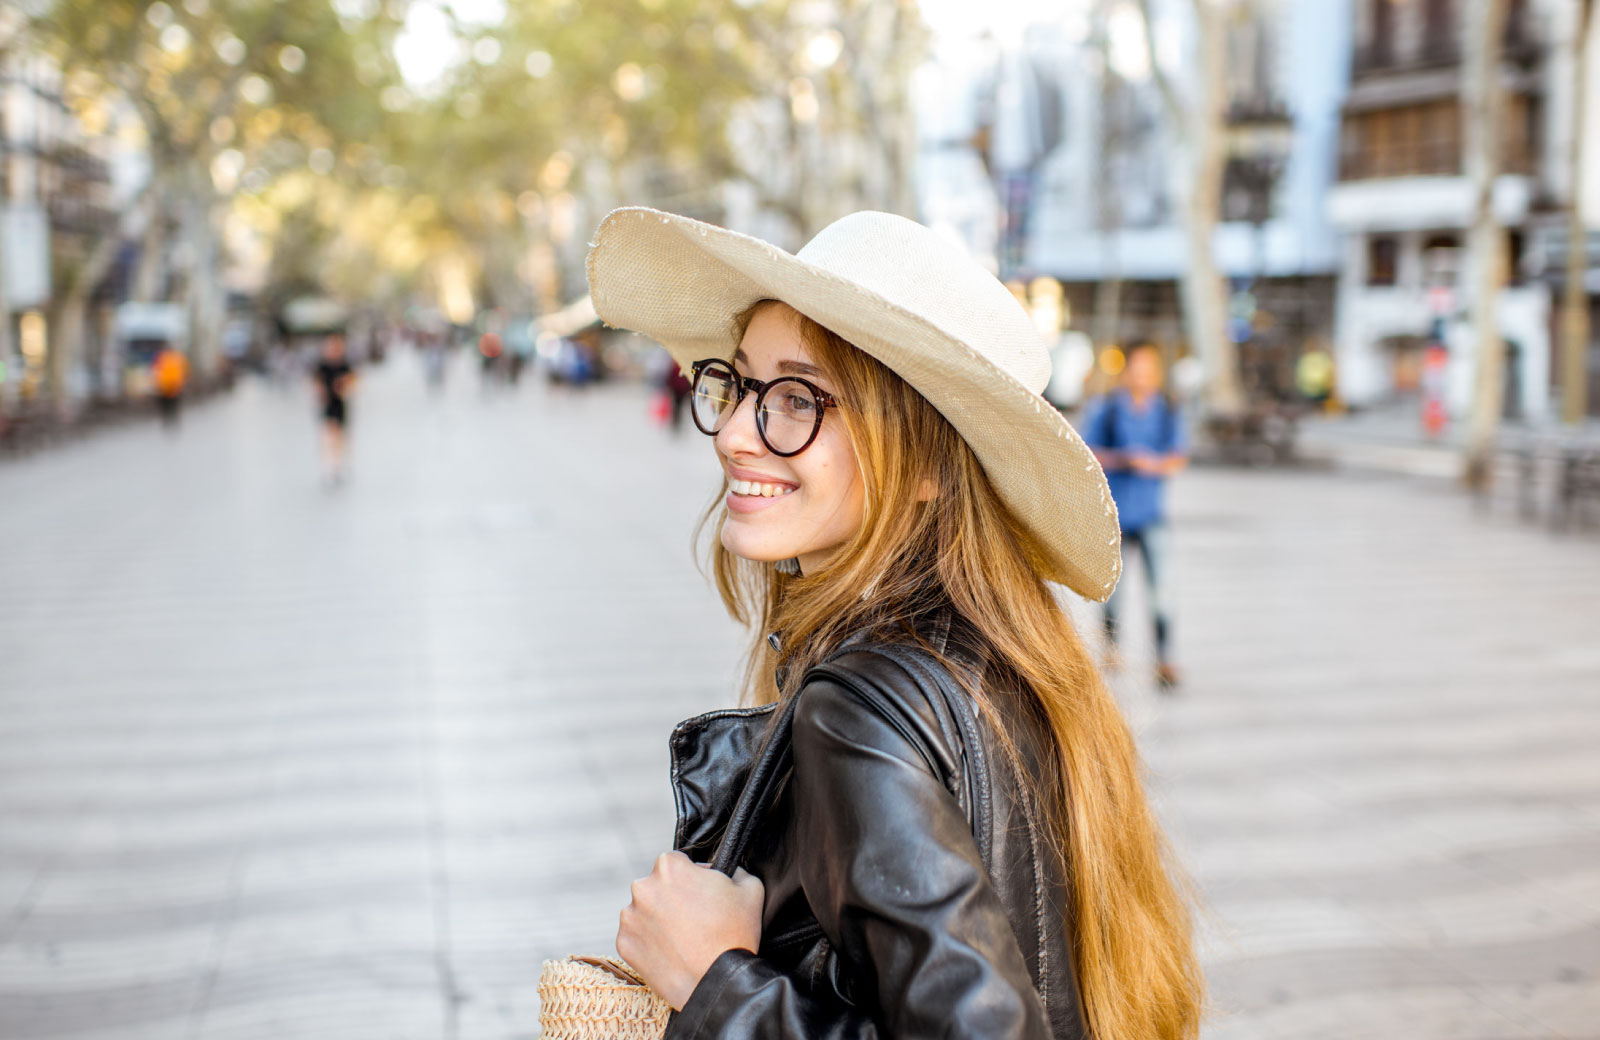 young woman with large hat and glasses exploring town